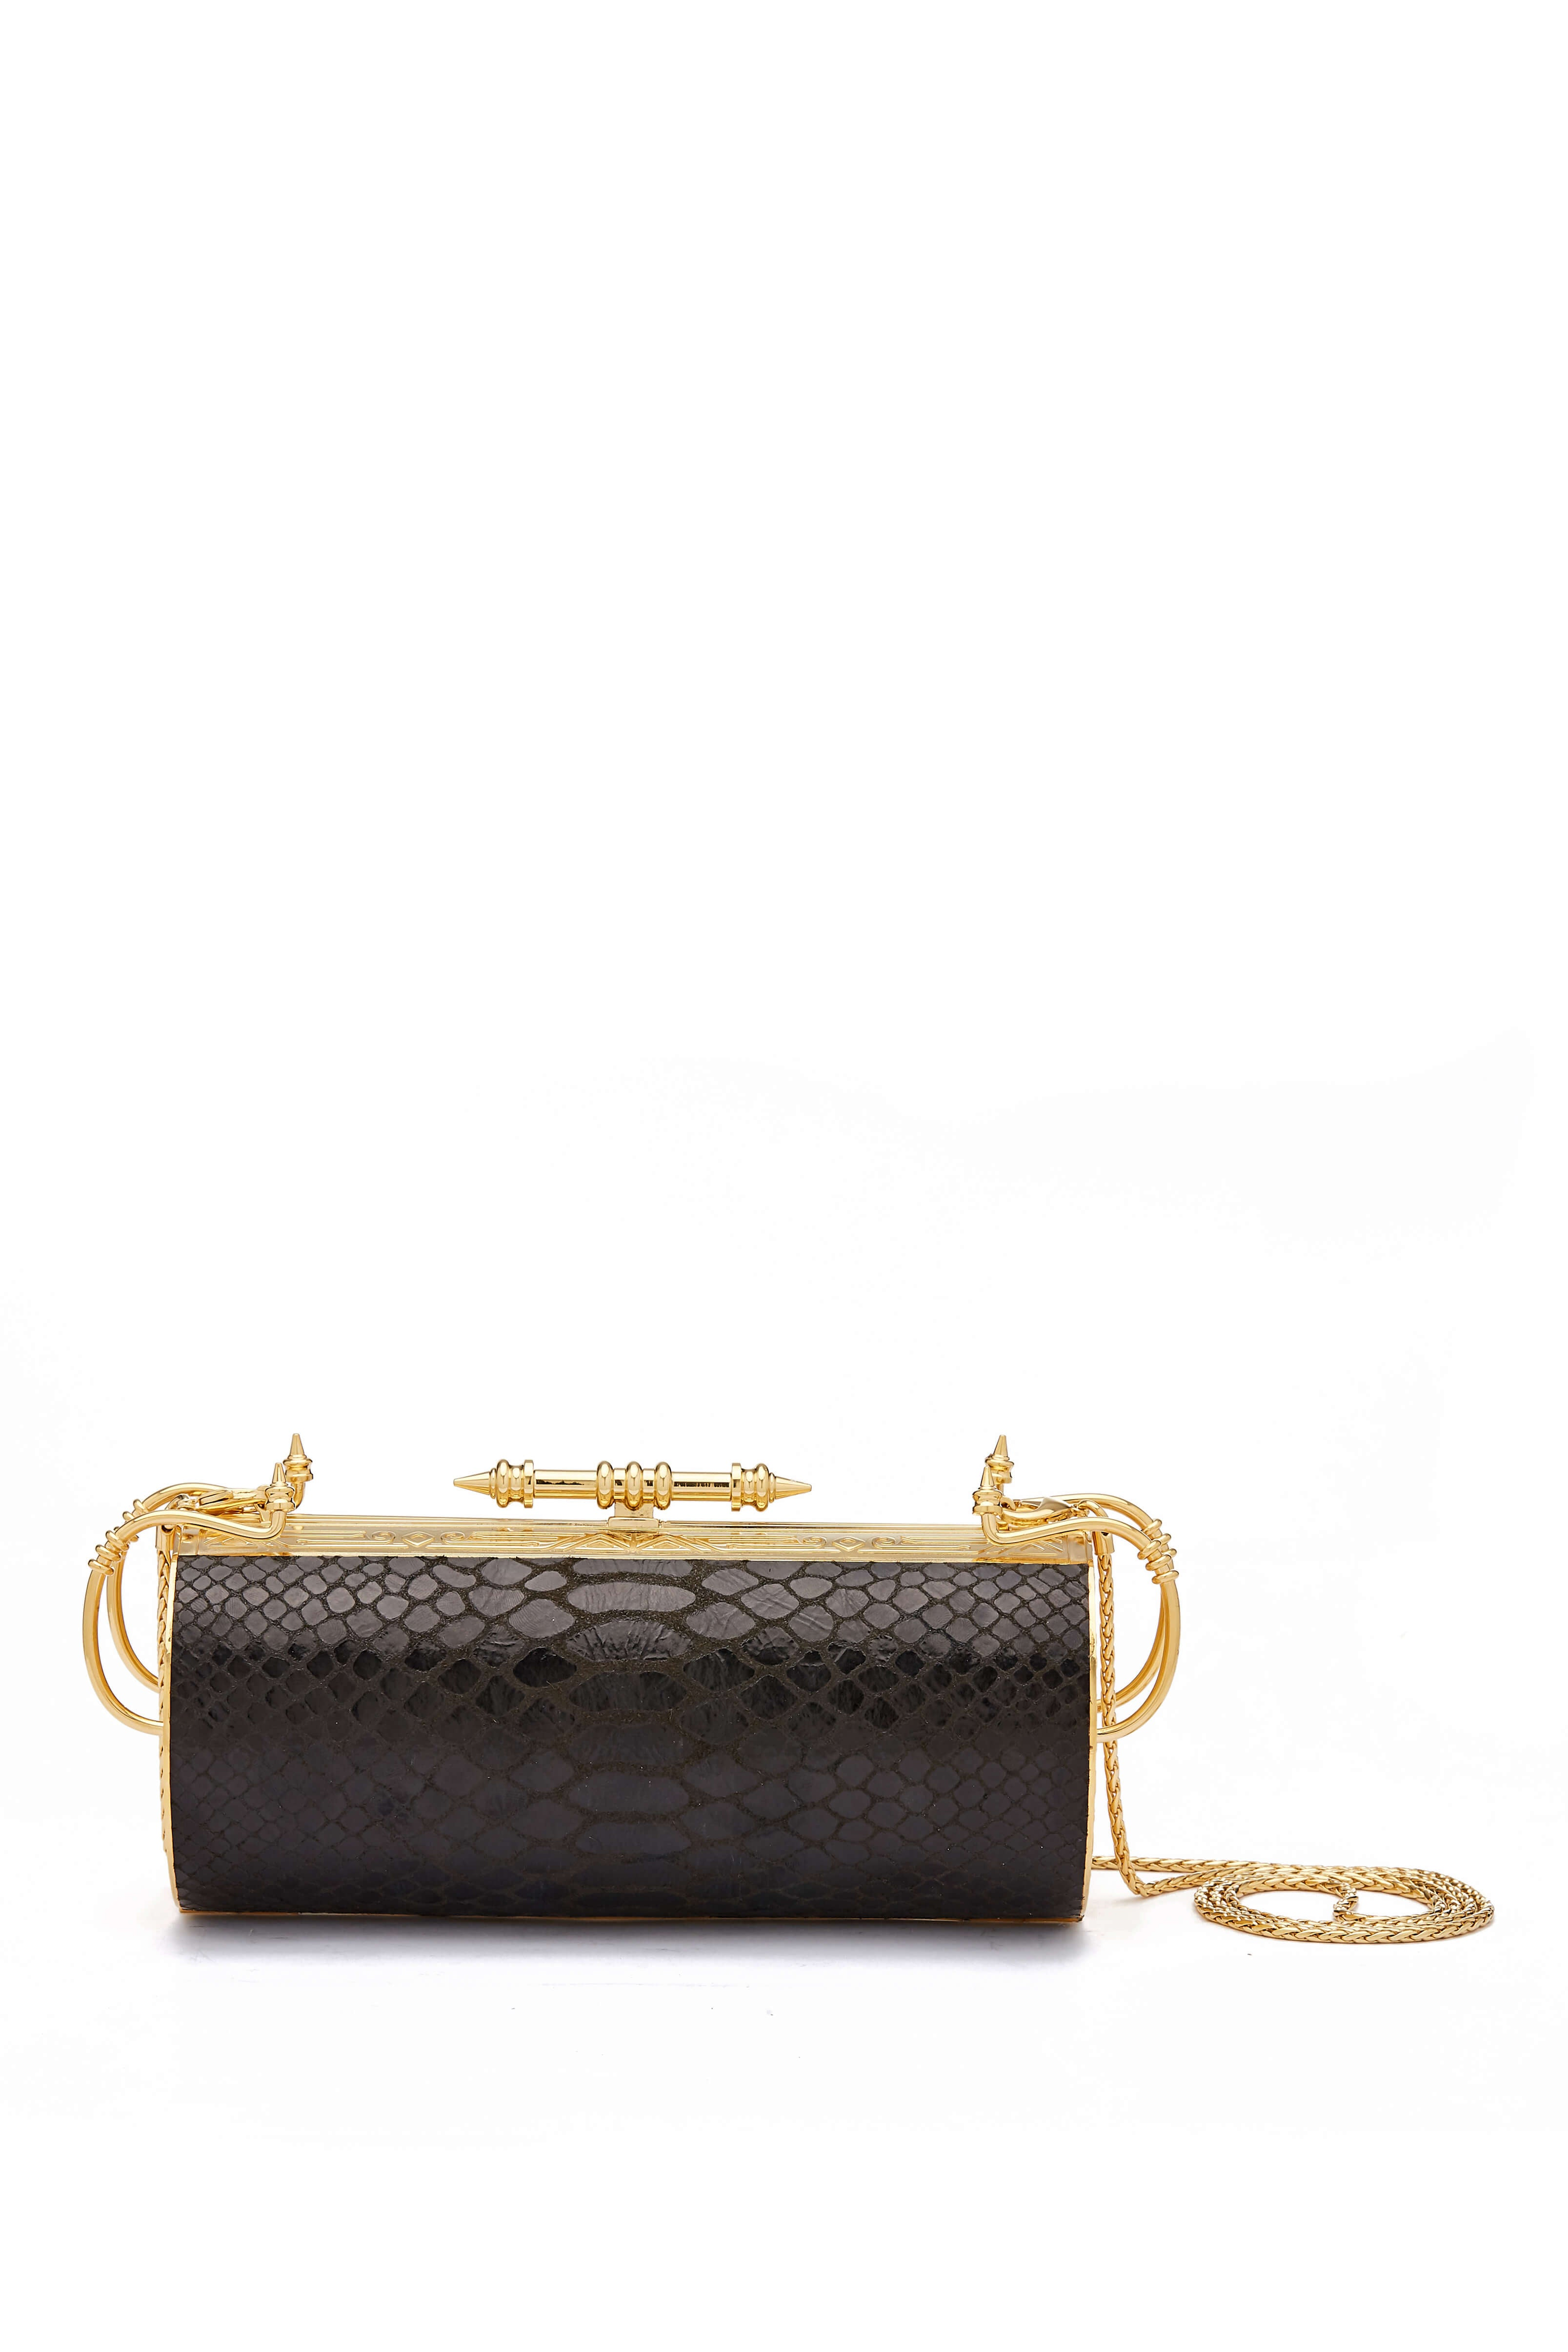 Felucca Python limited Black Clutch